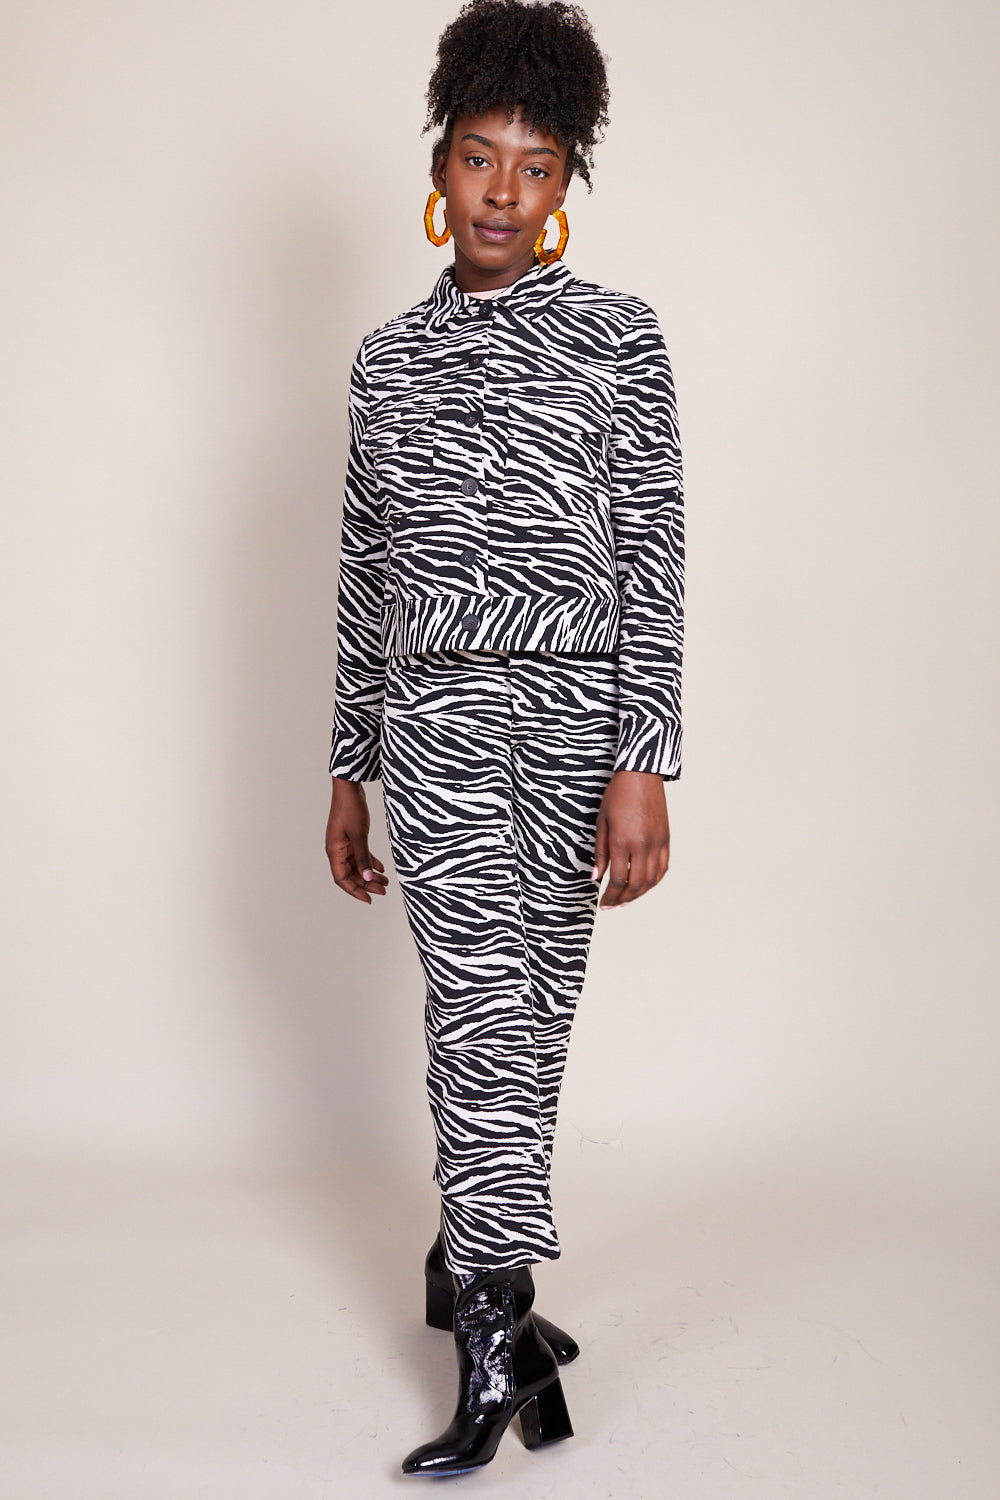 Claudia Jacket in Black and White Zebra